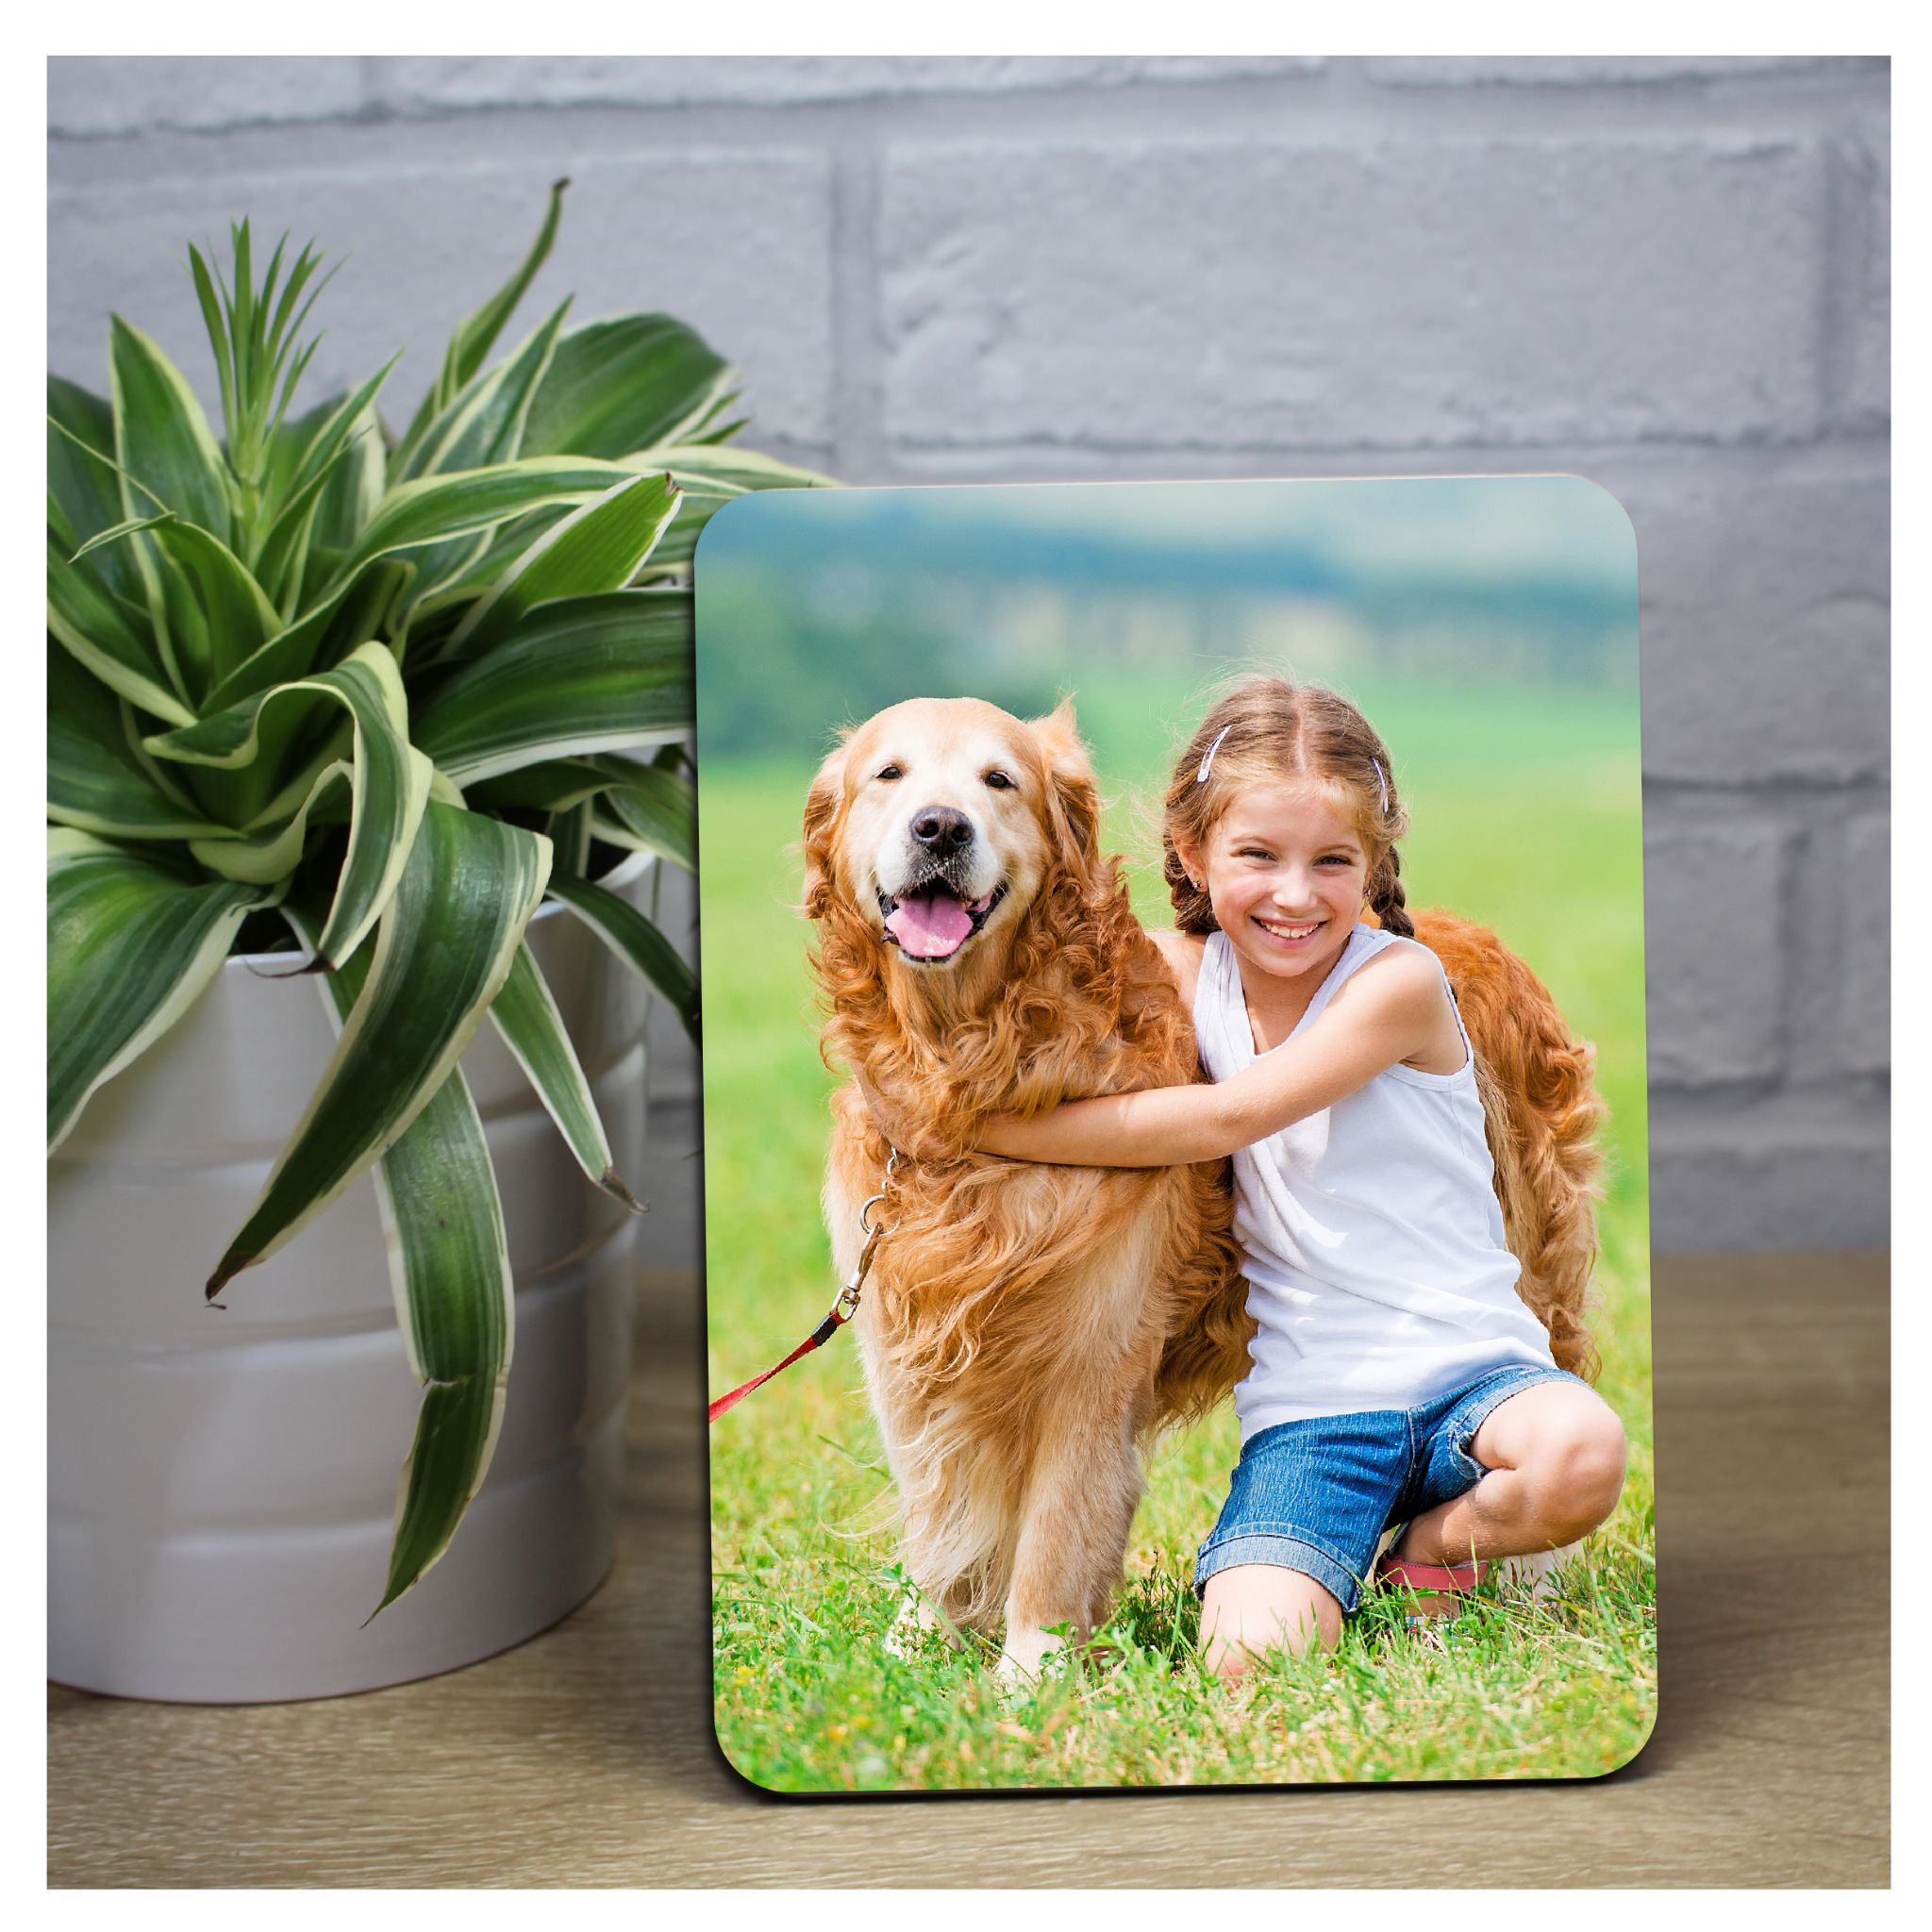 0cbc9e1b59fd Your My Picture Photo on Wood Panel Frame Print - Perfect Gift